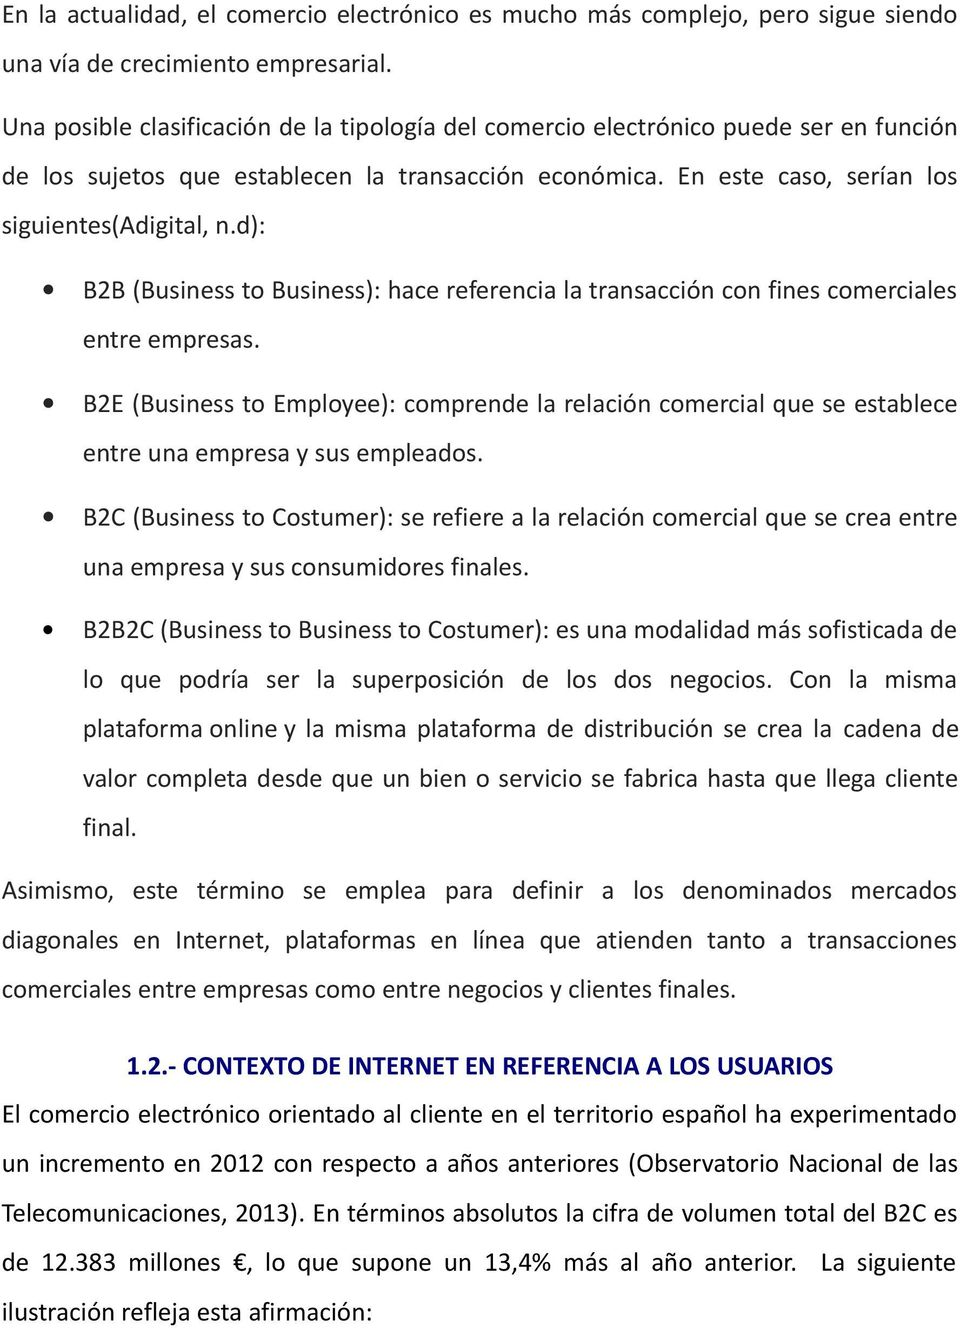 d): B2B (Business to Business): hace referencia la transacción con fines comerciales entre empresas.